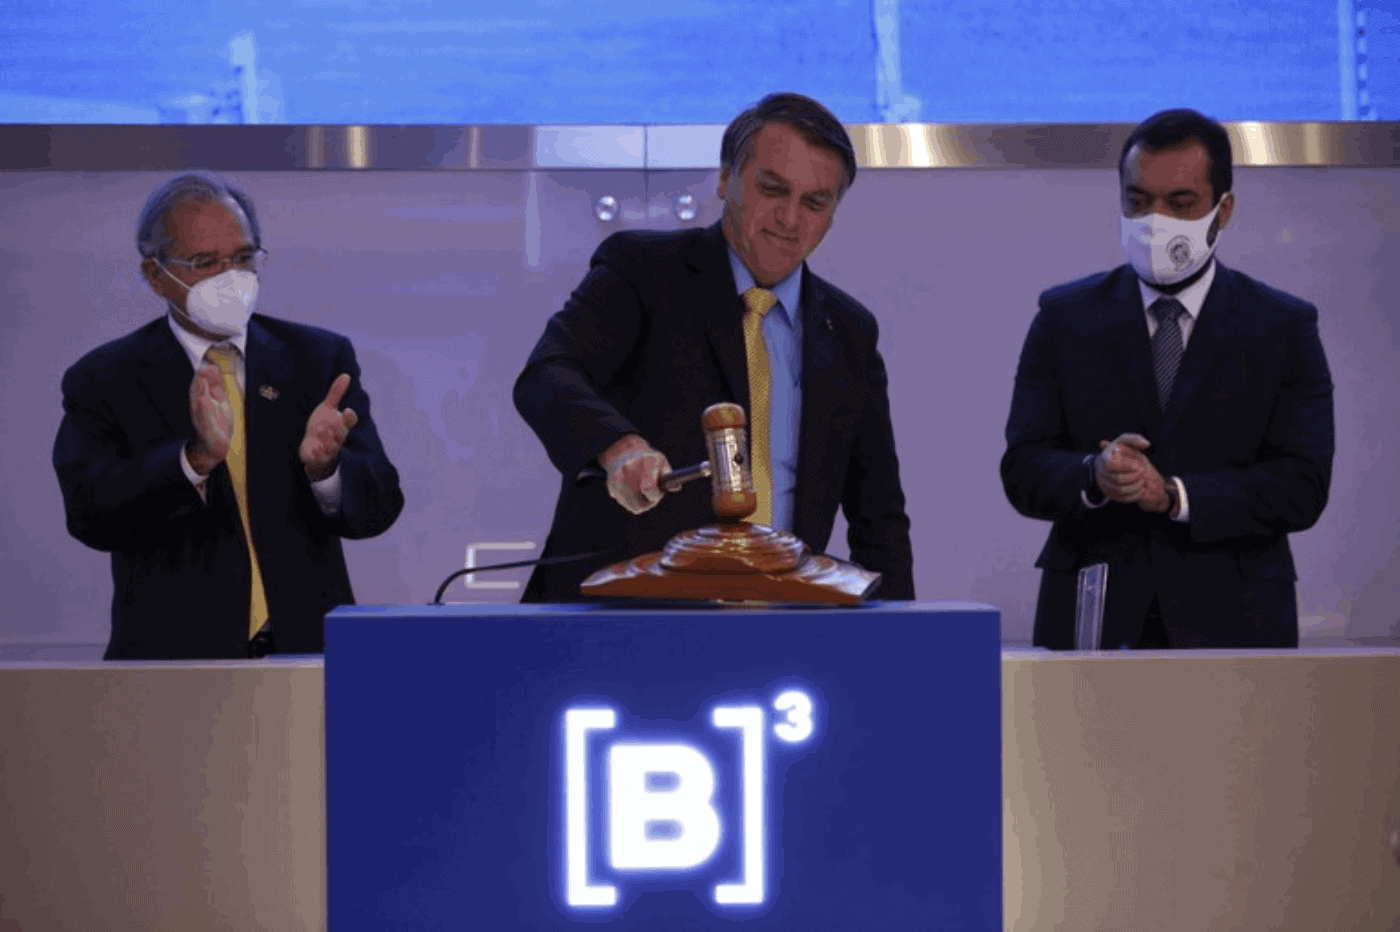 Revealed: Canadian pension funds invested nearly $1B in Bolsonaro-led water privatization scheme